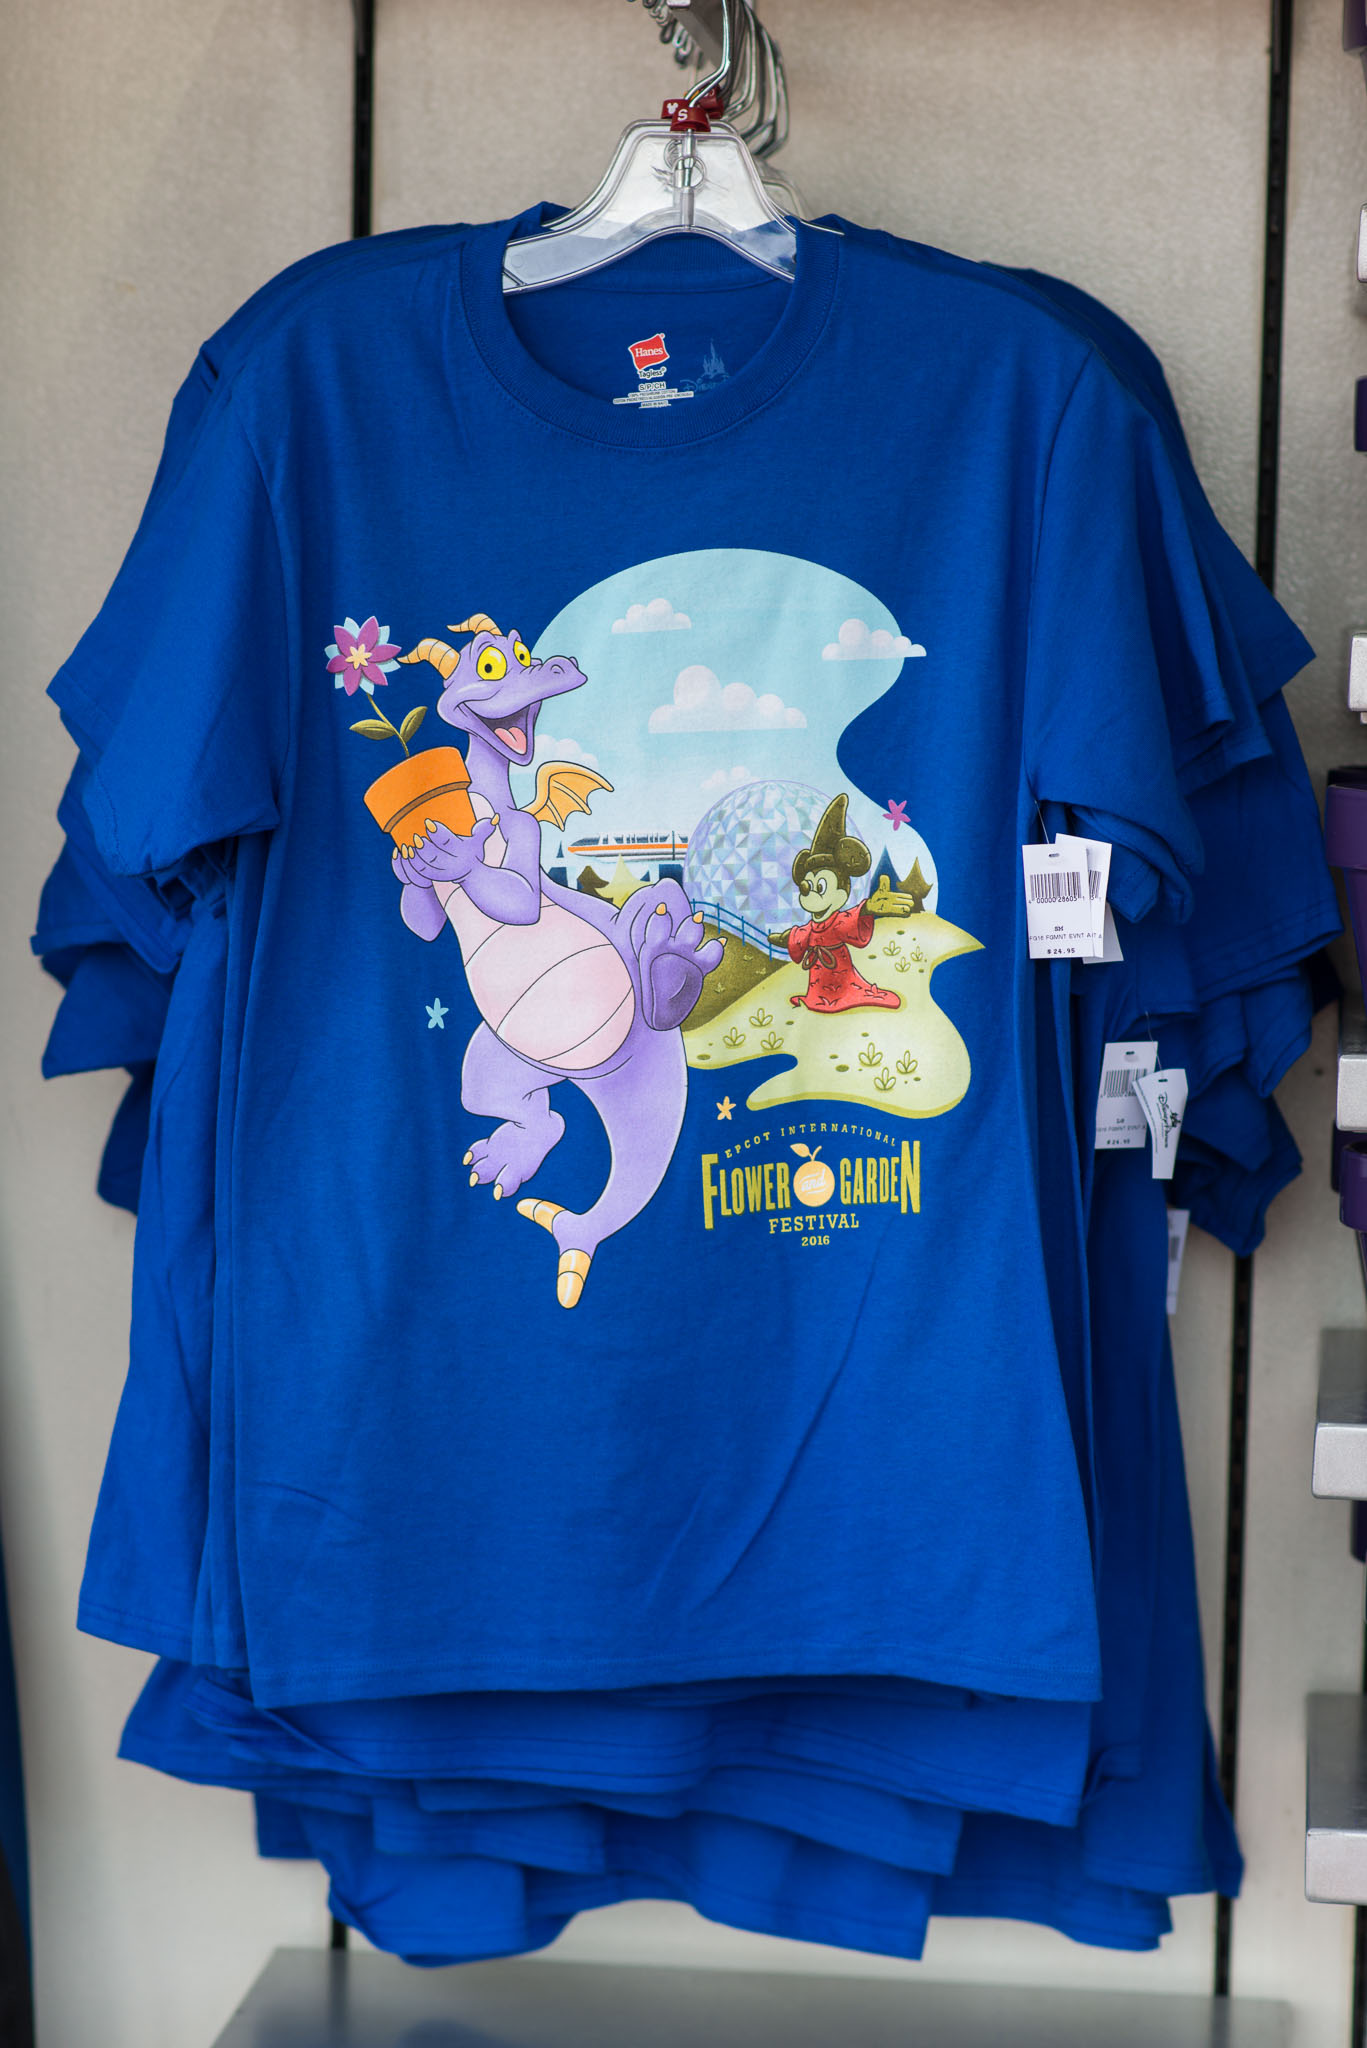 Blue T-Shirt Dragon Mickey Spaceship Earth - Epcot Flower & Garden Festival 2016